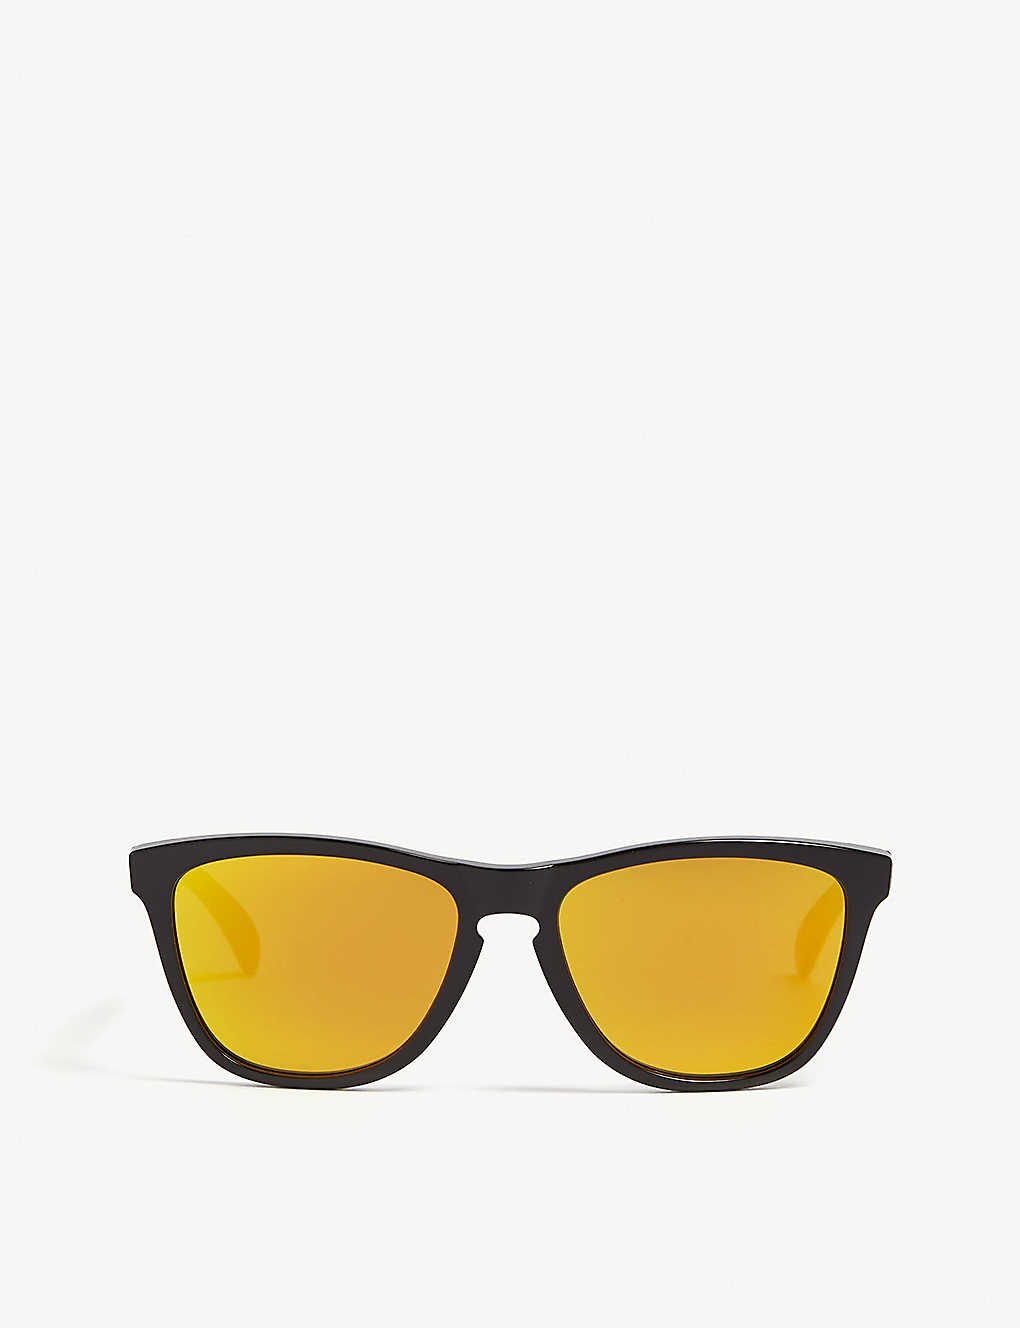 71a119bd29acd OAKLEY - Frogskins Valentino Rossi square-frame sunglasses ...